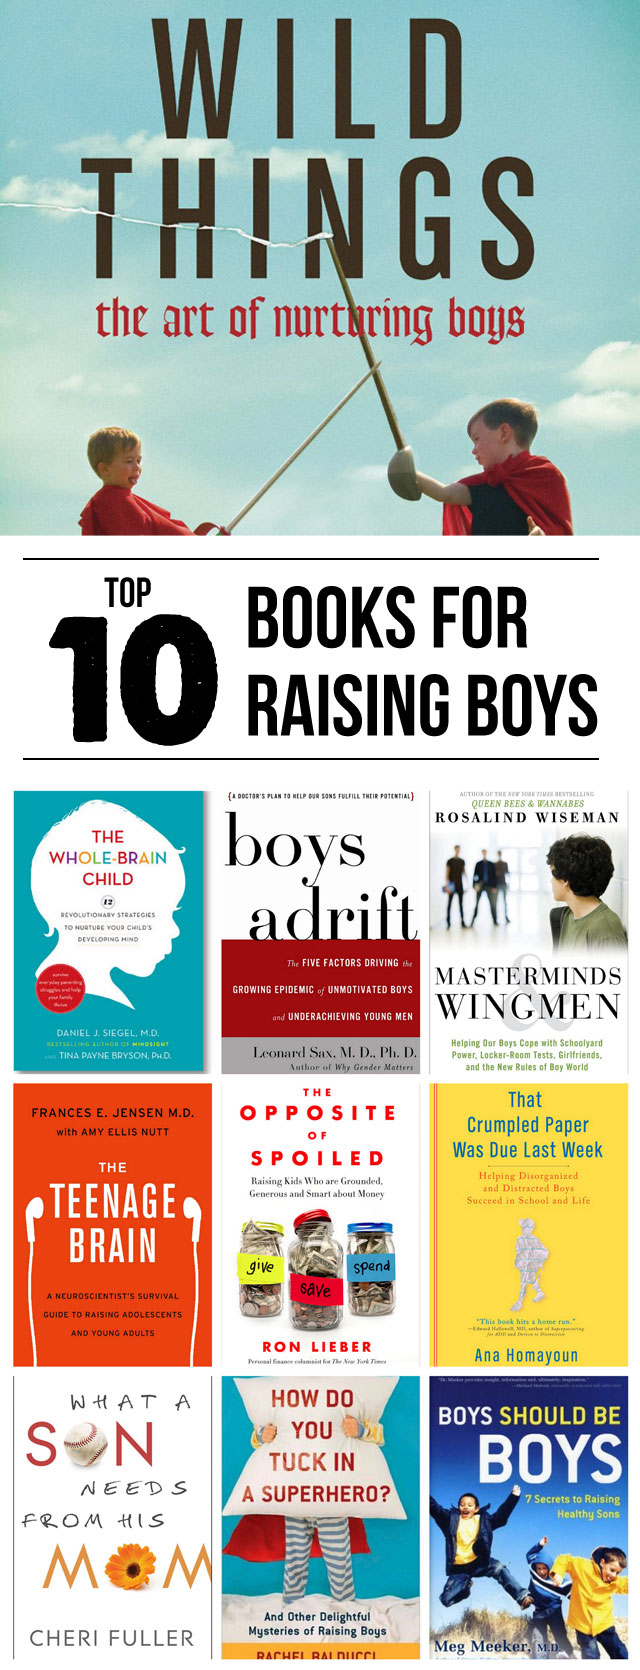 Top 10 Books for Parenting Boys - This is such a great list, #3 and #5 are going on my audiobooks list!